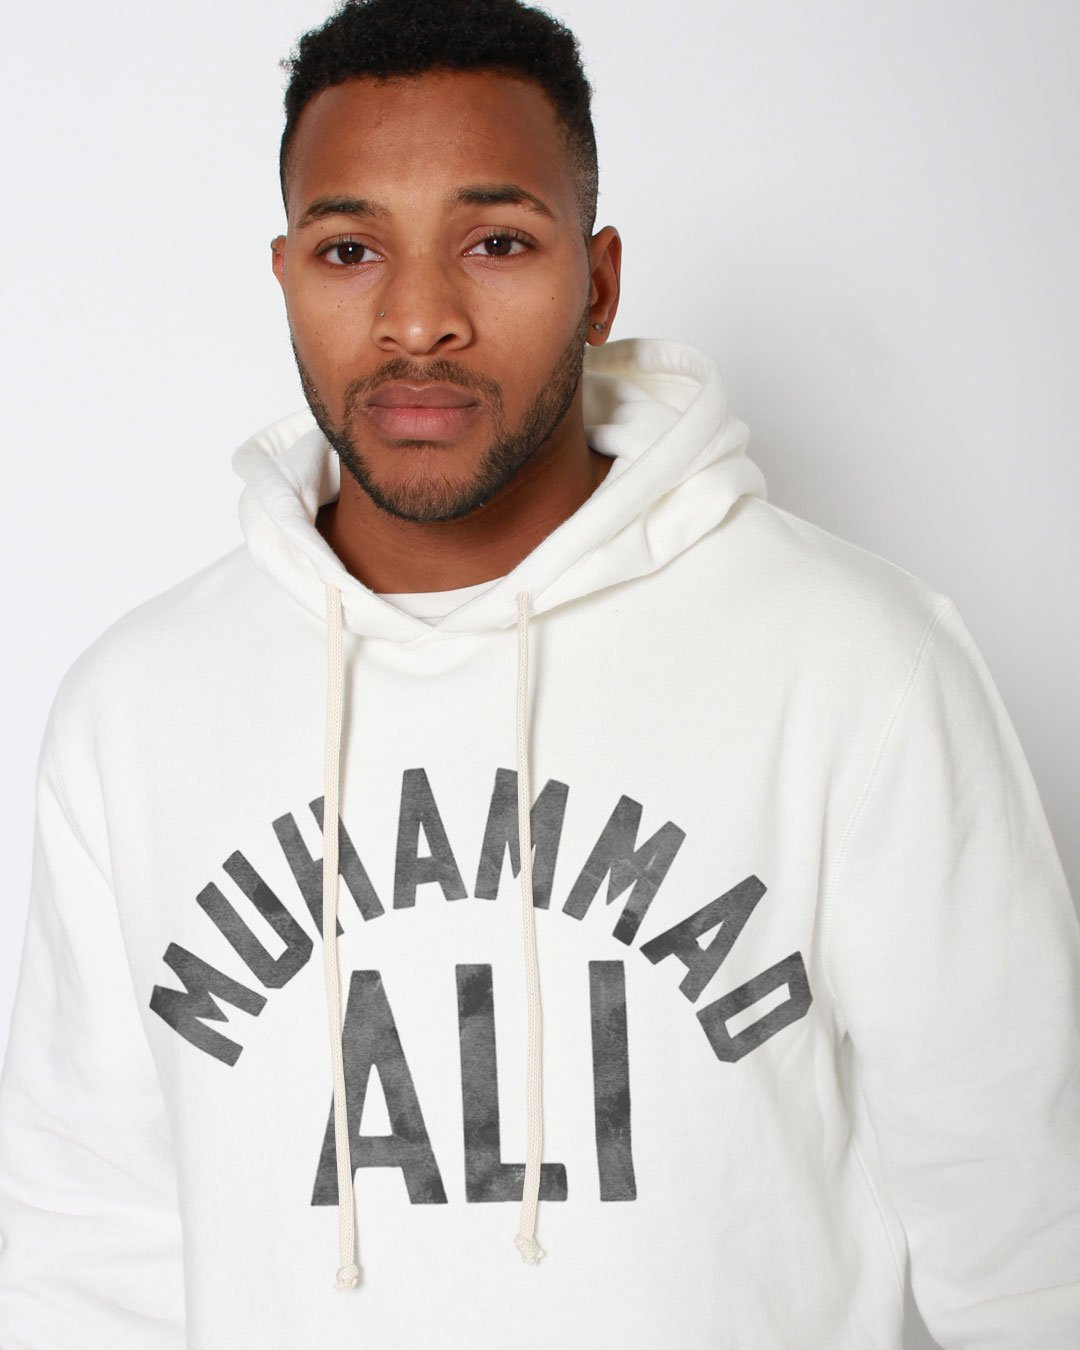 Ali 'Live as a Champ' Pullover Hoody - Roots of Inc dba Roots of Fight